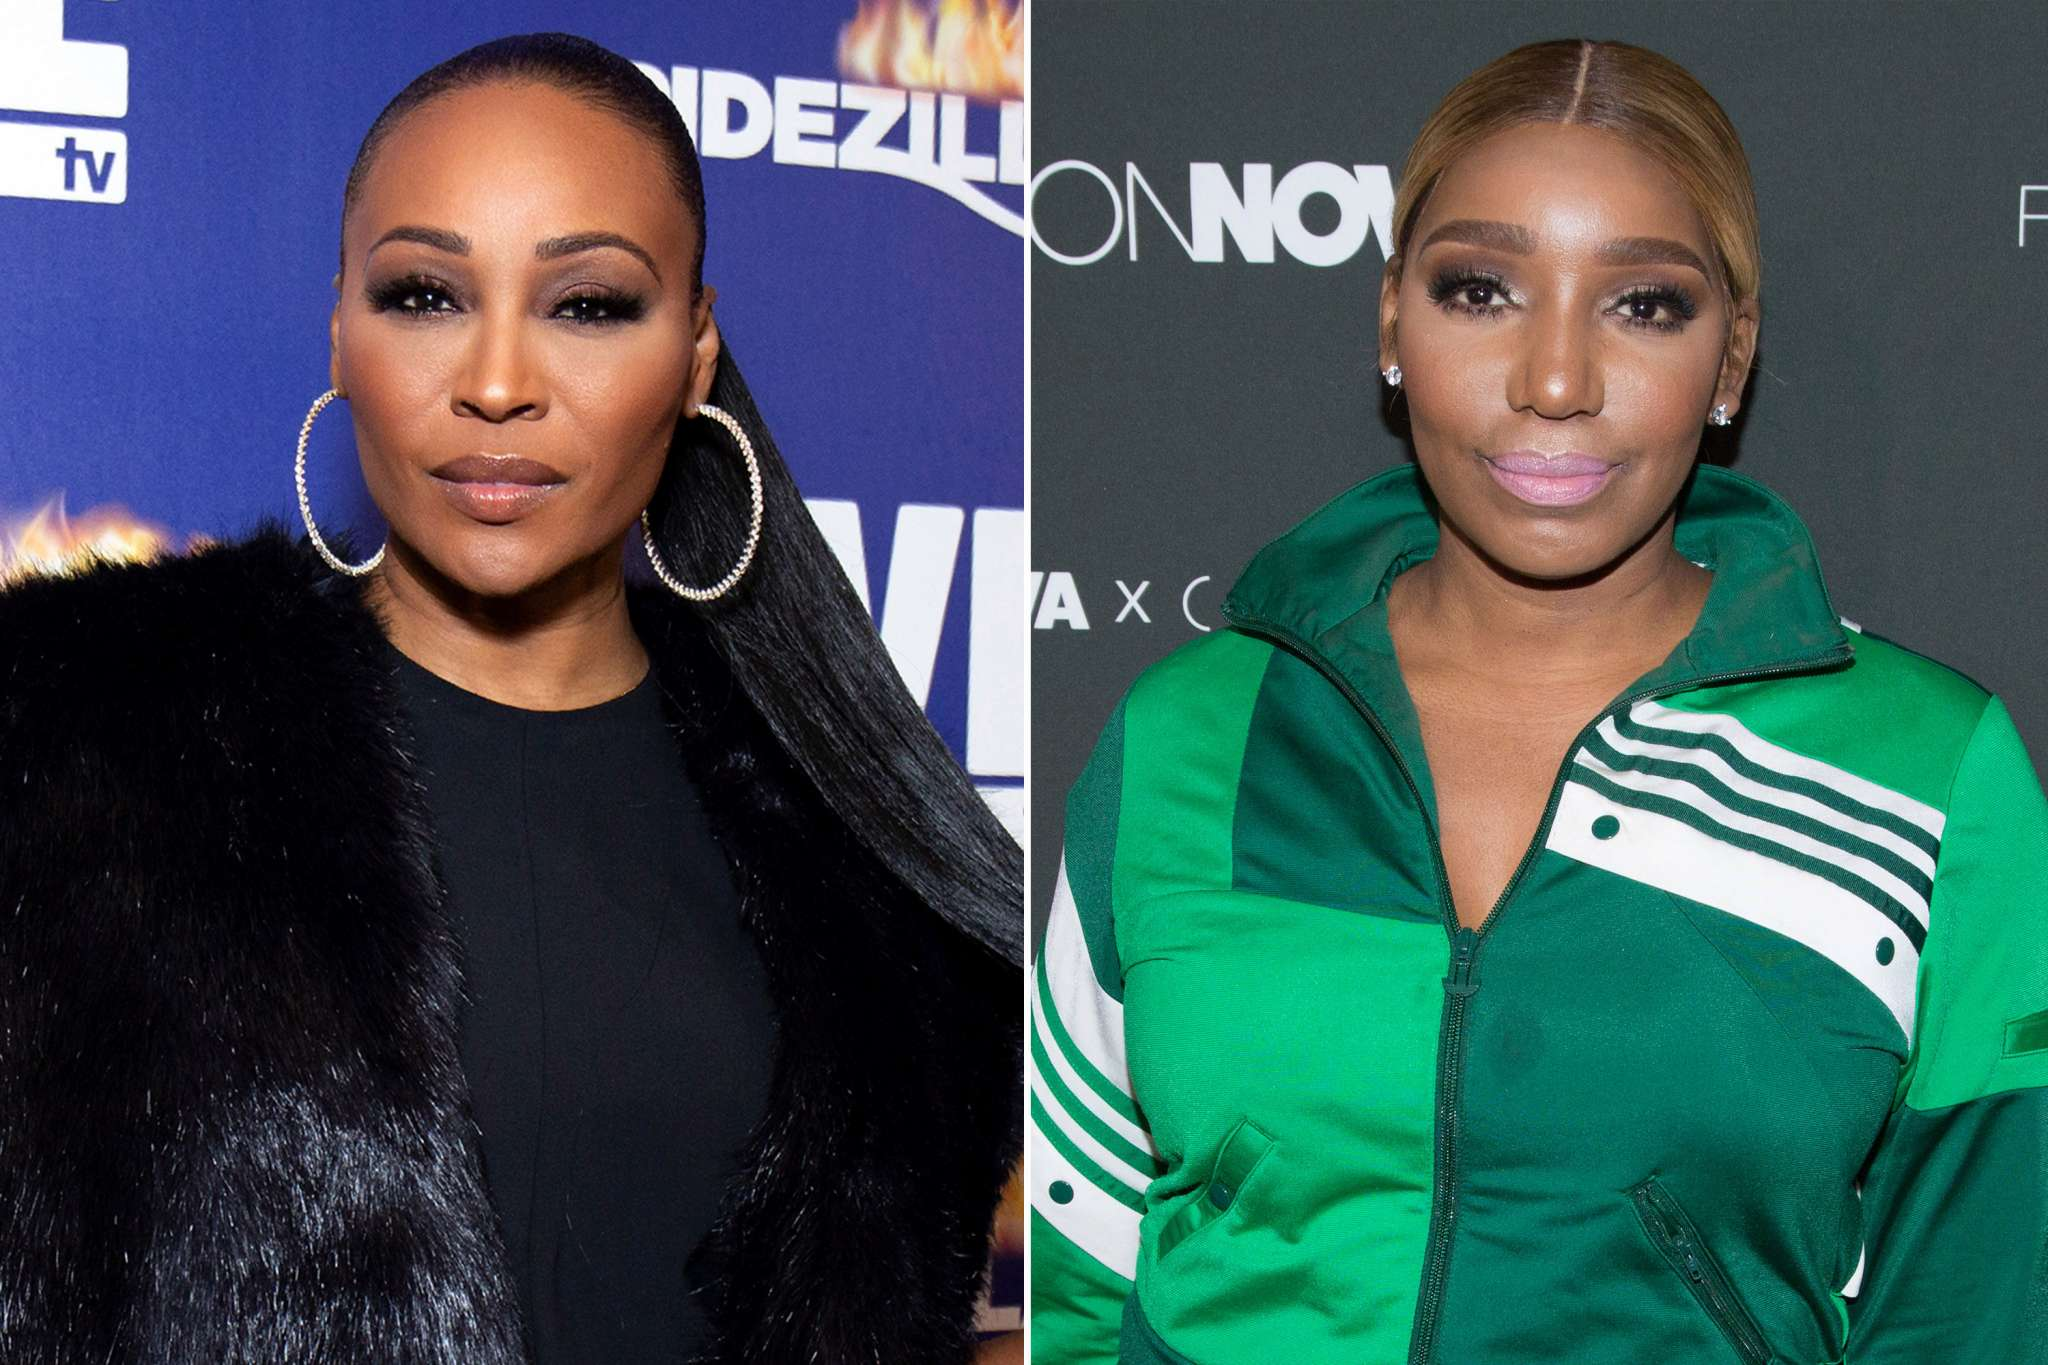 NeNe Leakes' Fans Tell Her That Cynthia Bailey Was Never Her Real Friend